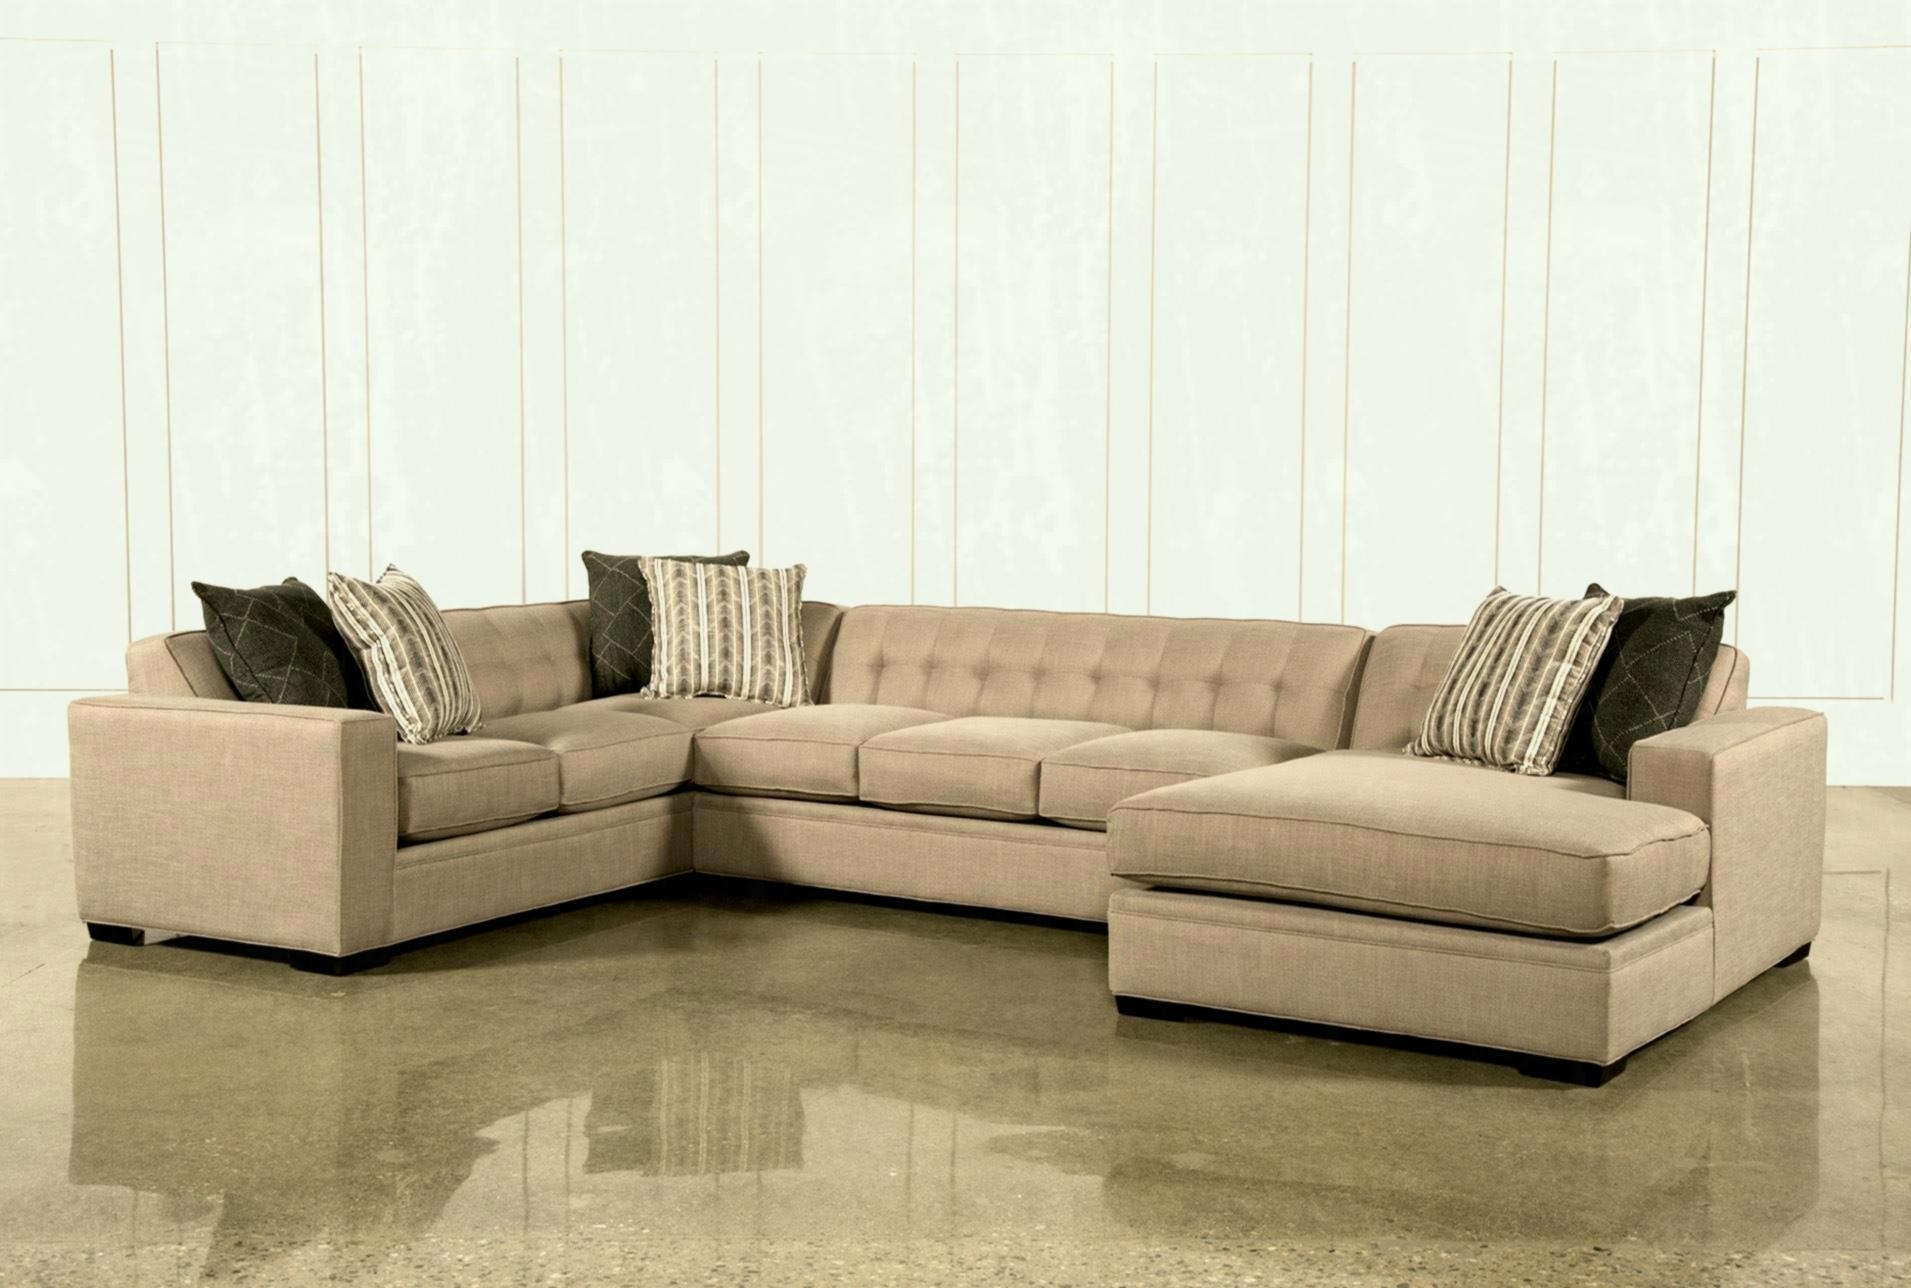 Living Spaces Sectional - Tidex regarding Meyer 3 Piece Sectionals With Laf Chaise (Image 13 of 30)